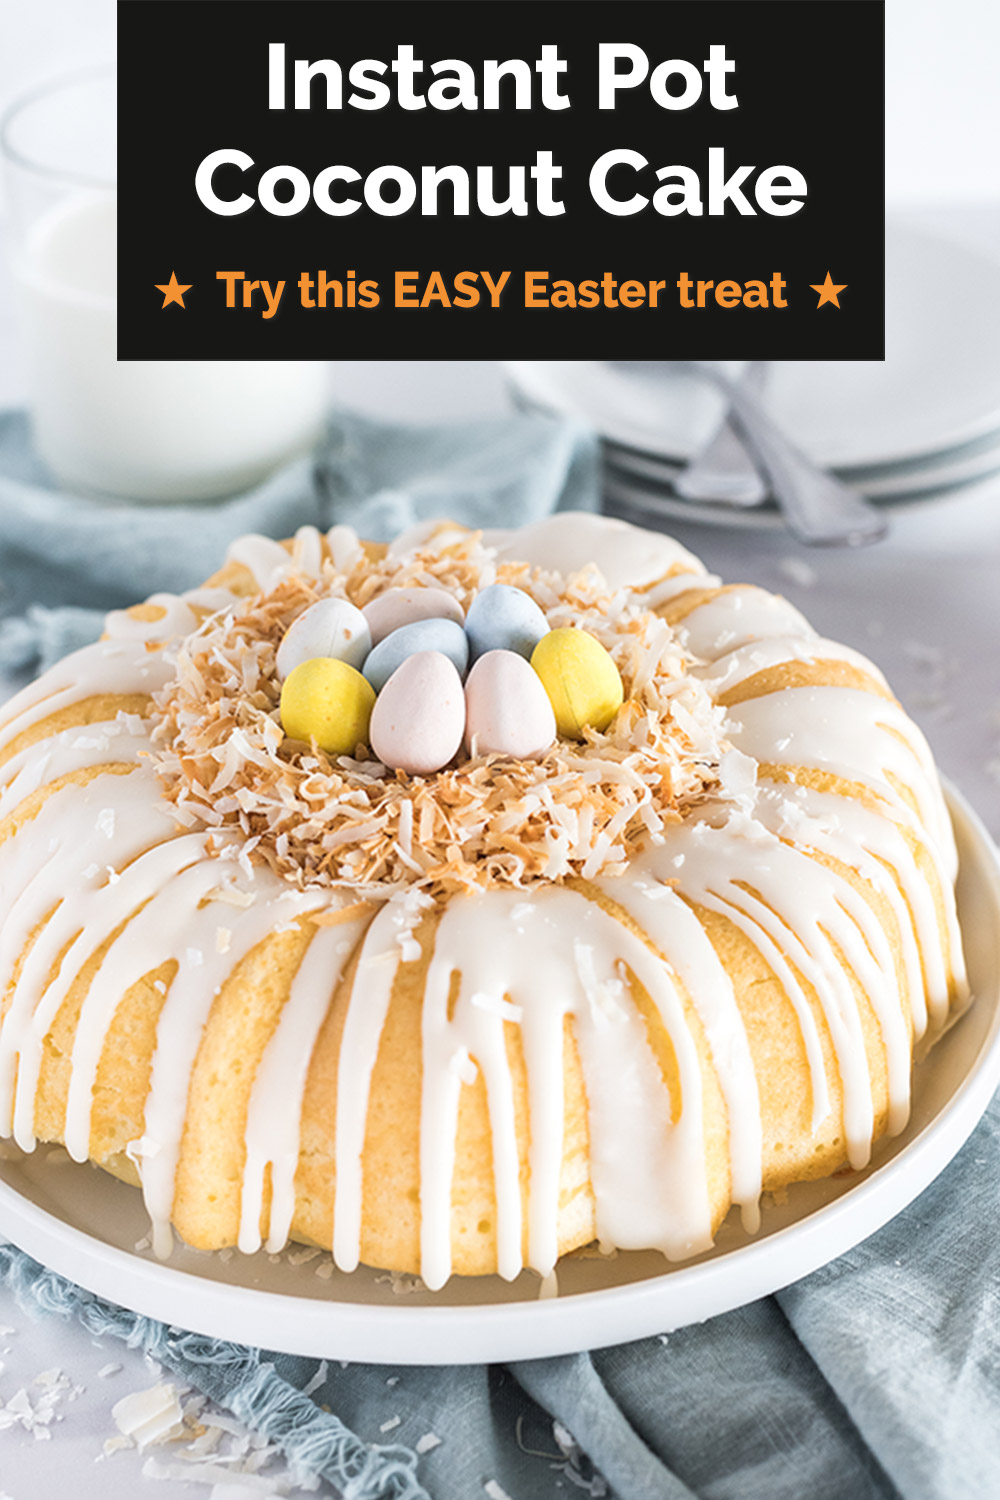 """This EASY Easter dessert is a perfect addition to your family's Easter table this year. Use coconut to make a fun """"nest"""" for your cadbury mini eggs. Plus, this shortcut Instant Pot recipe """"bakes"""" up quick in your Instant Pot, so your oven is free for other parts of your Easter dinner. via @PressureCook2da"""